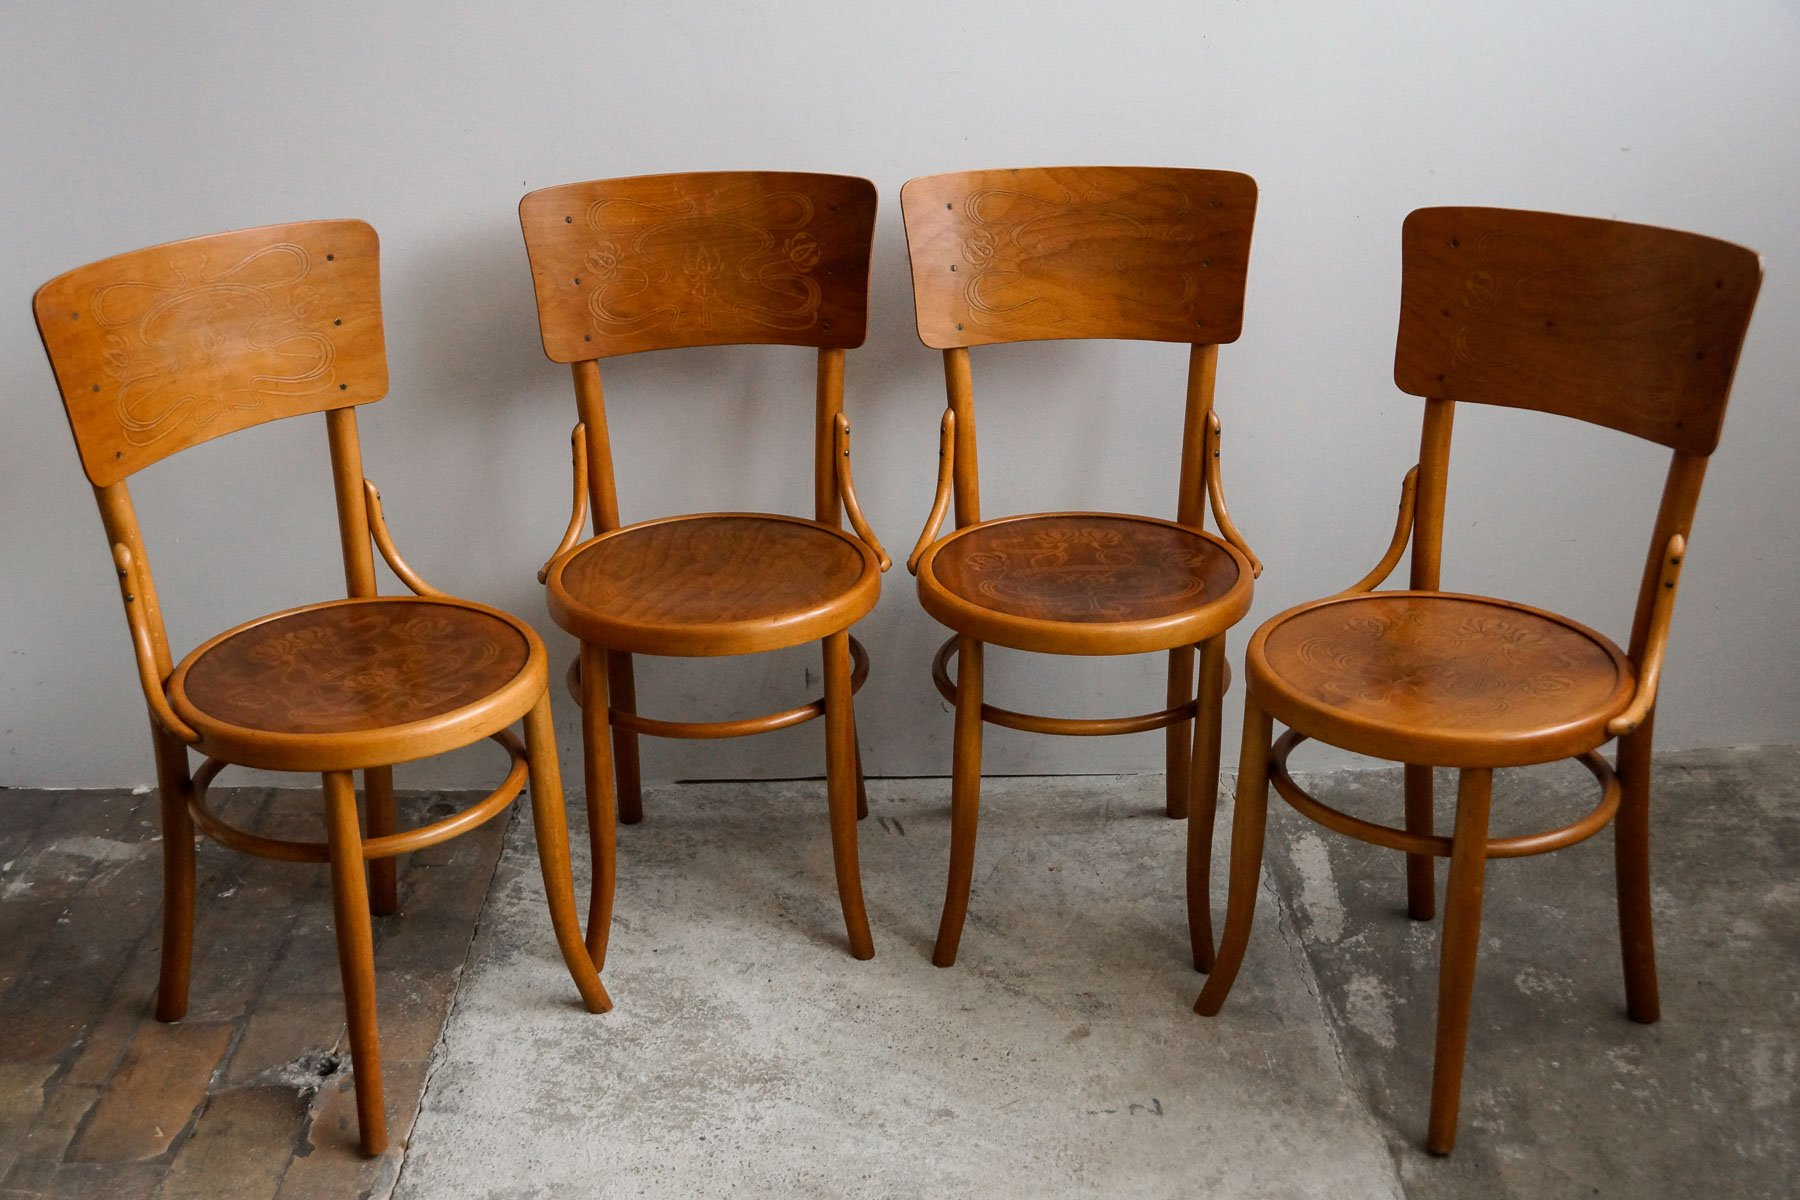 Vintage bentwood chairs - Antique Bentwood Chairs From M Bel Furnier Fabrik Ag 1910s Set Of 4 For Sale At Pamono